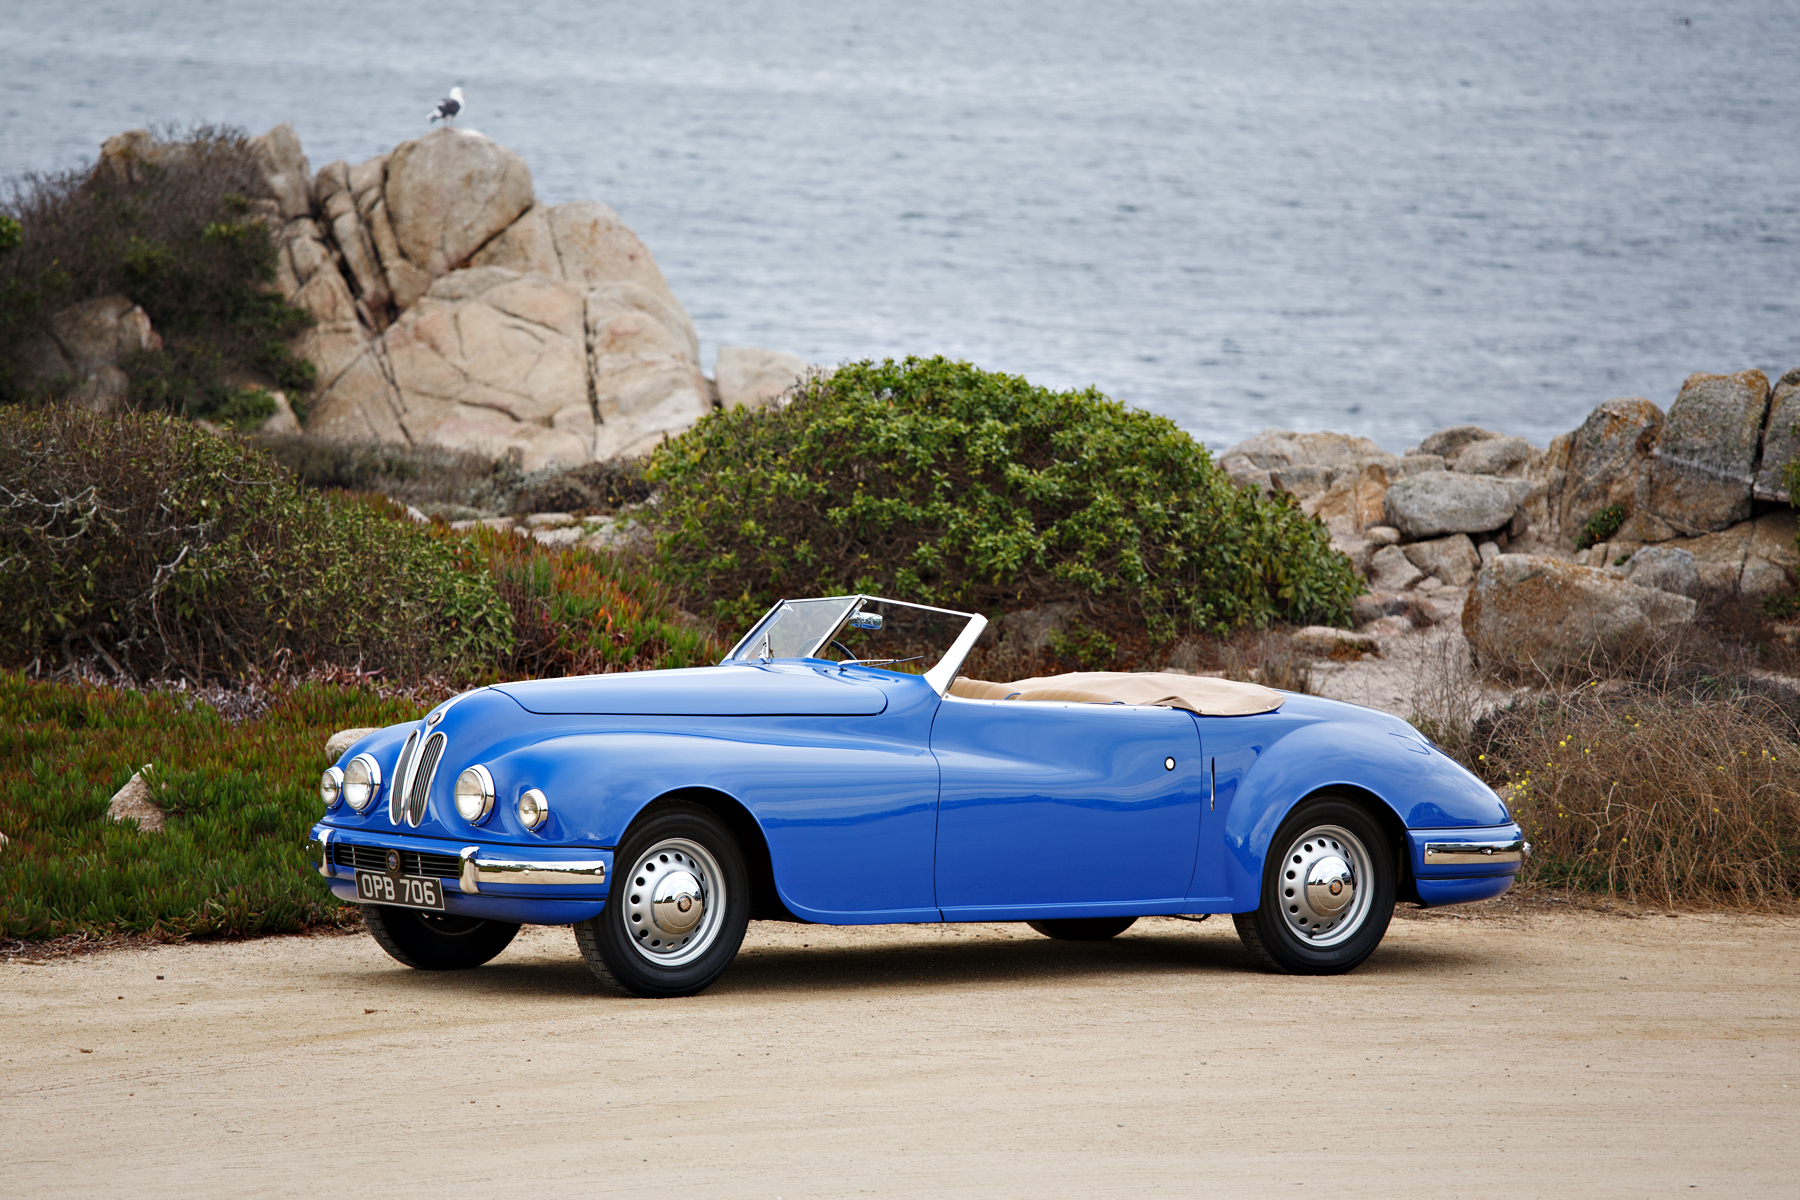 1949 Bristol 402 Cabriolet by the beach